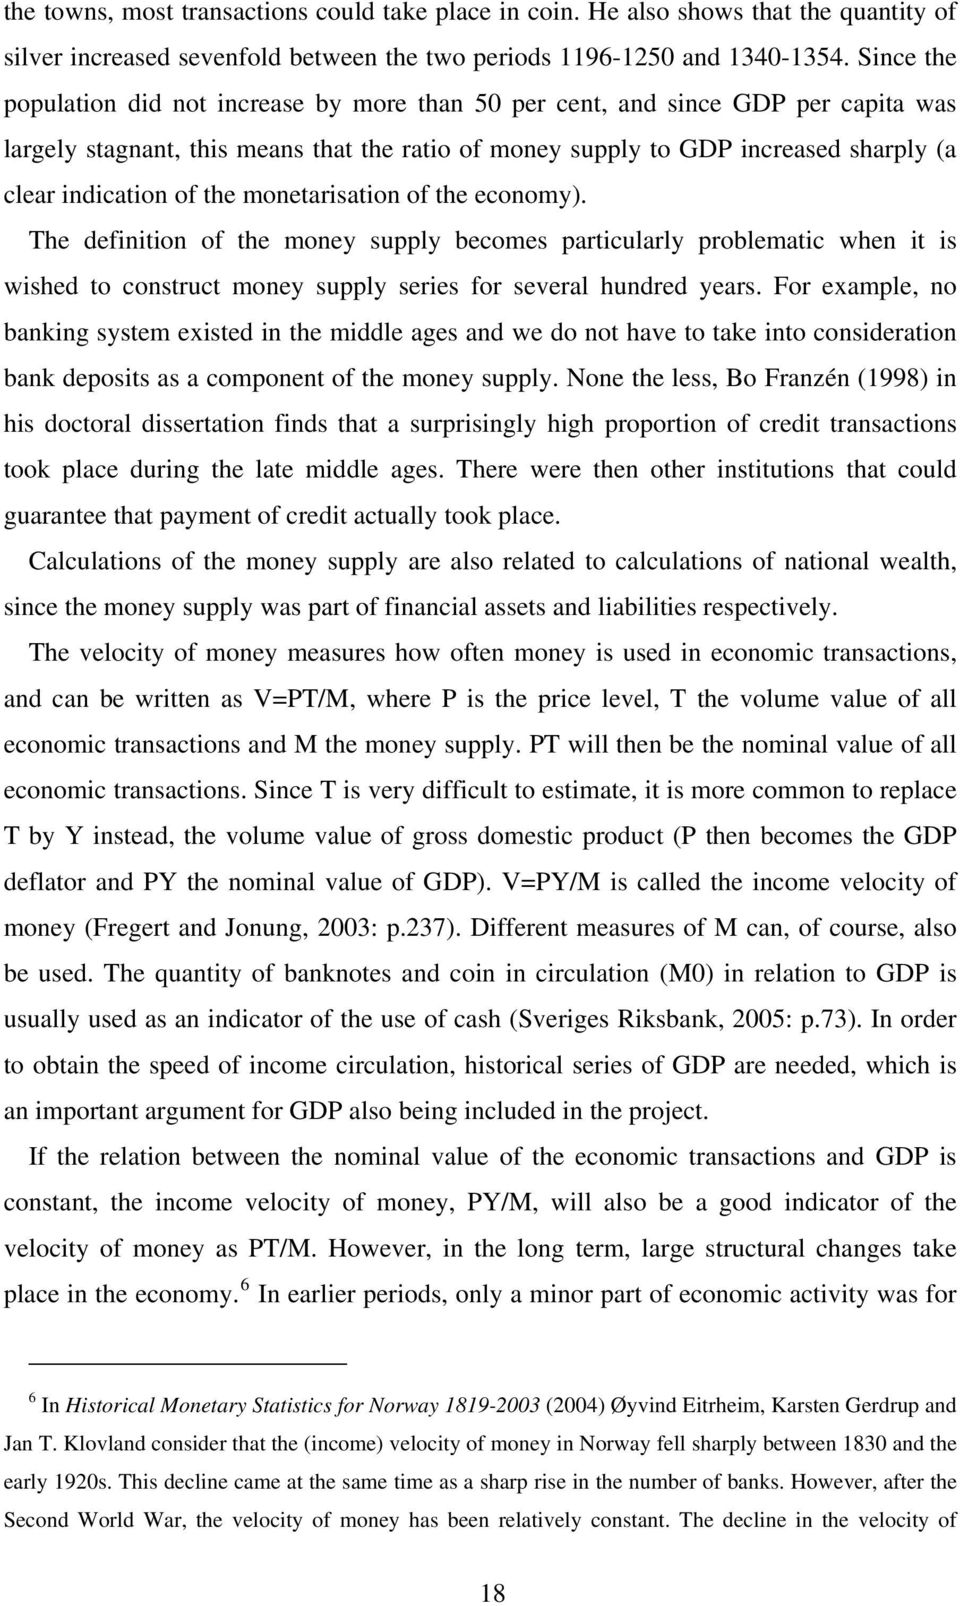 of the monetarisation of the economy). The definition of the money supply becomes particularly problematic when it is wished to construct money supply series for several hundred years.